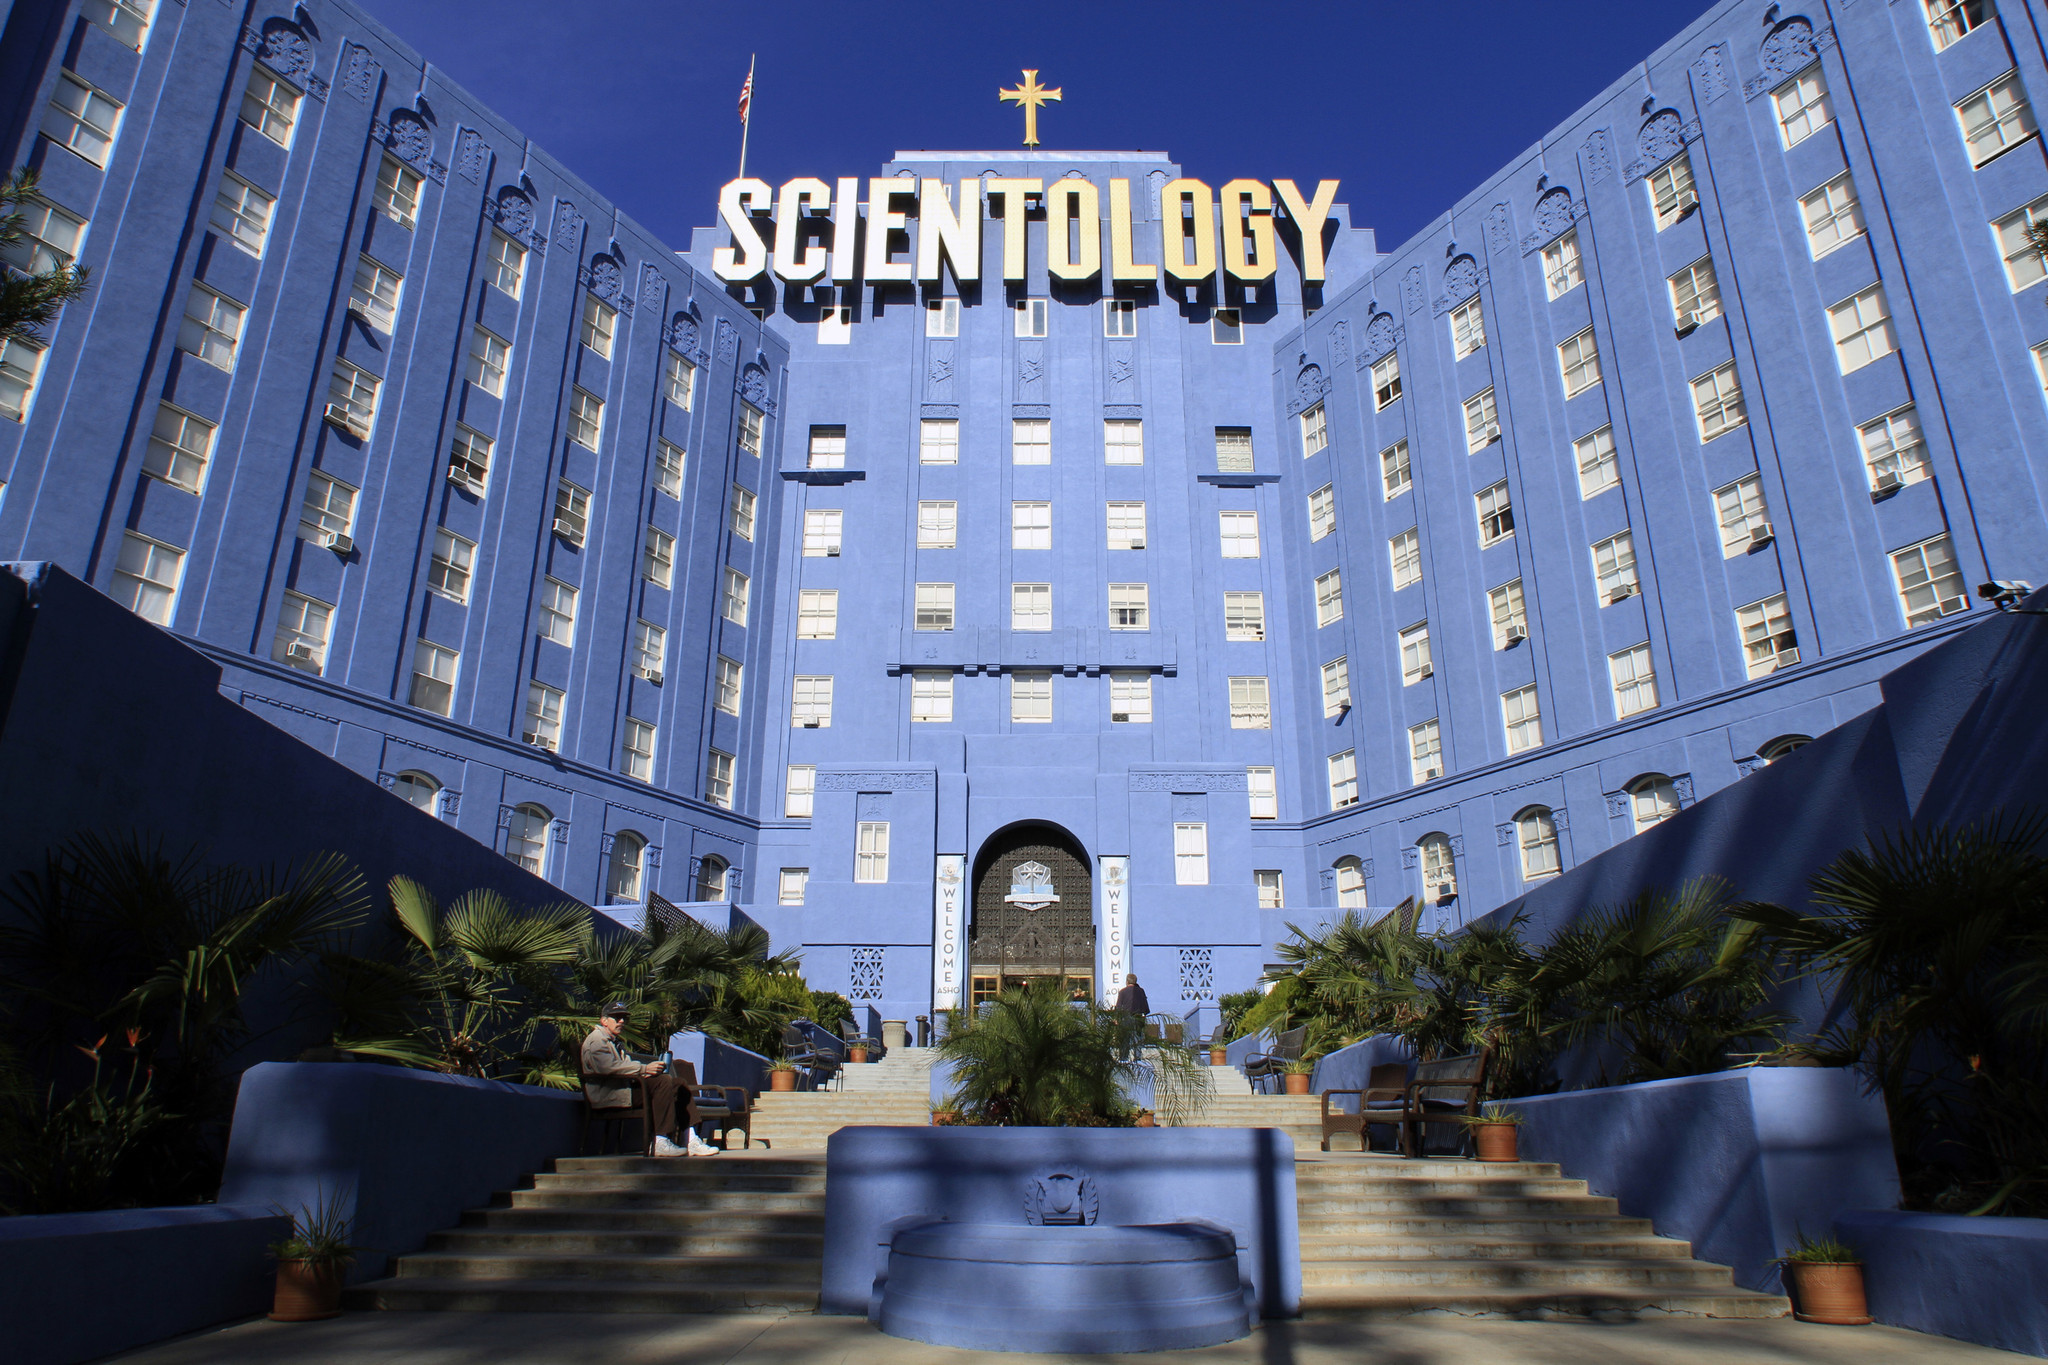 http://www.trbimg.com/img-5527216b/turbine/la-scientology-investigations-reporting-archive-20150409